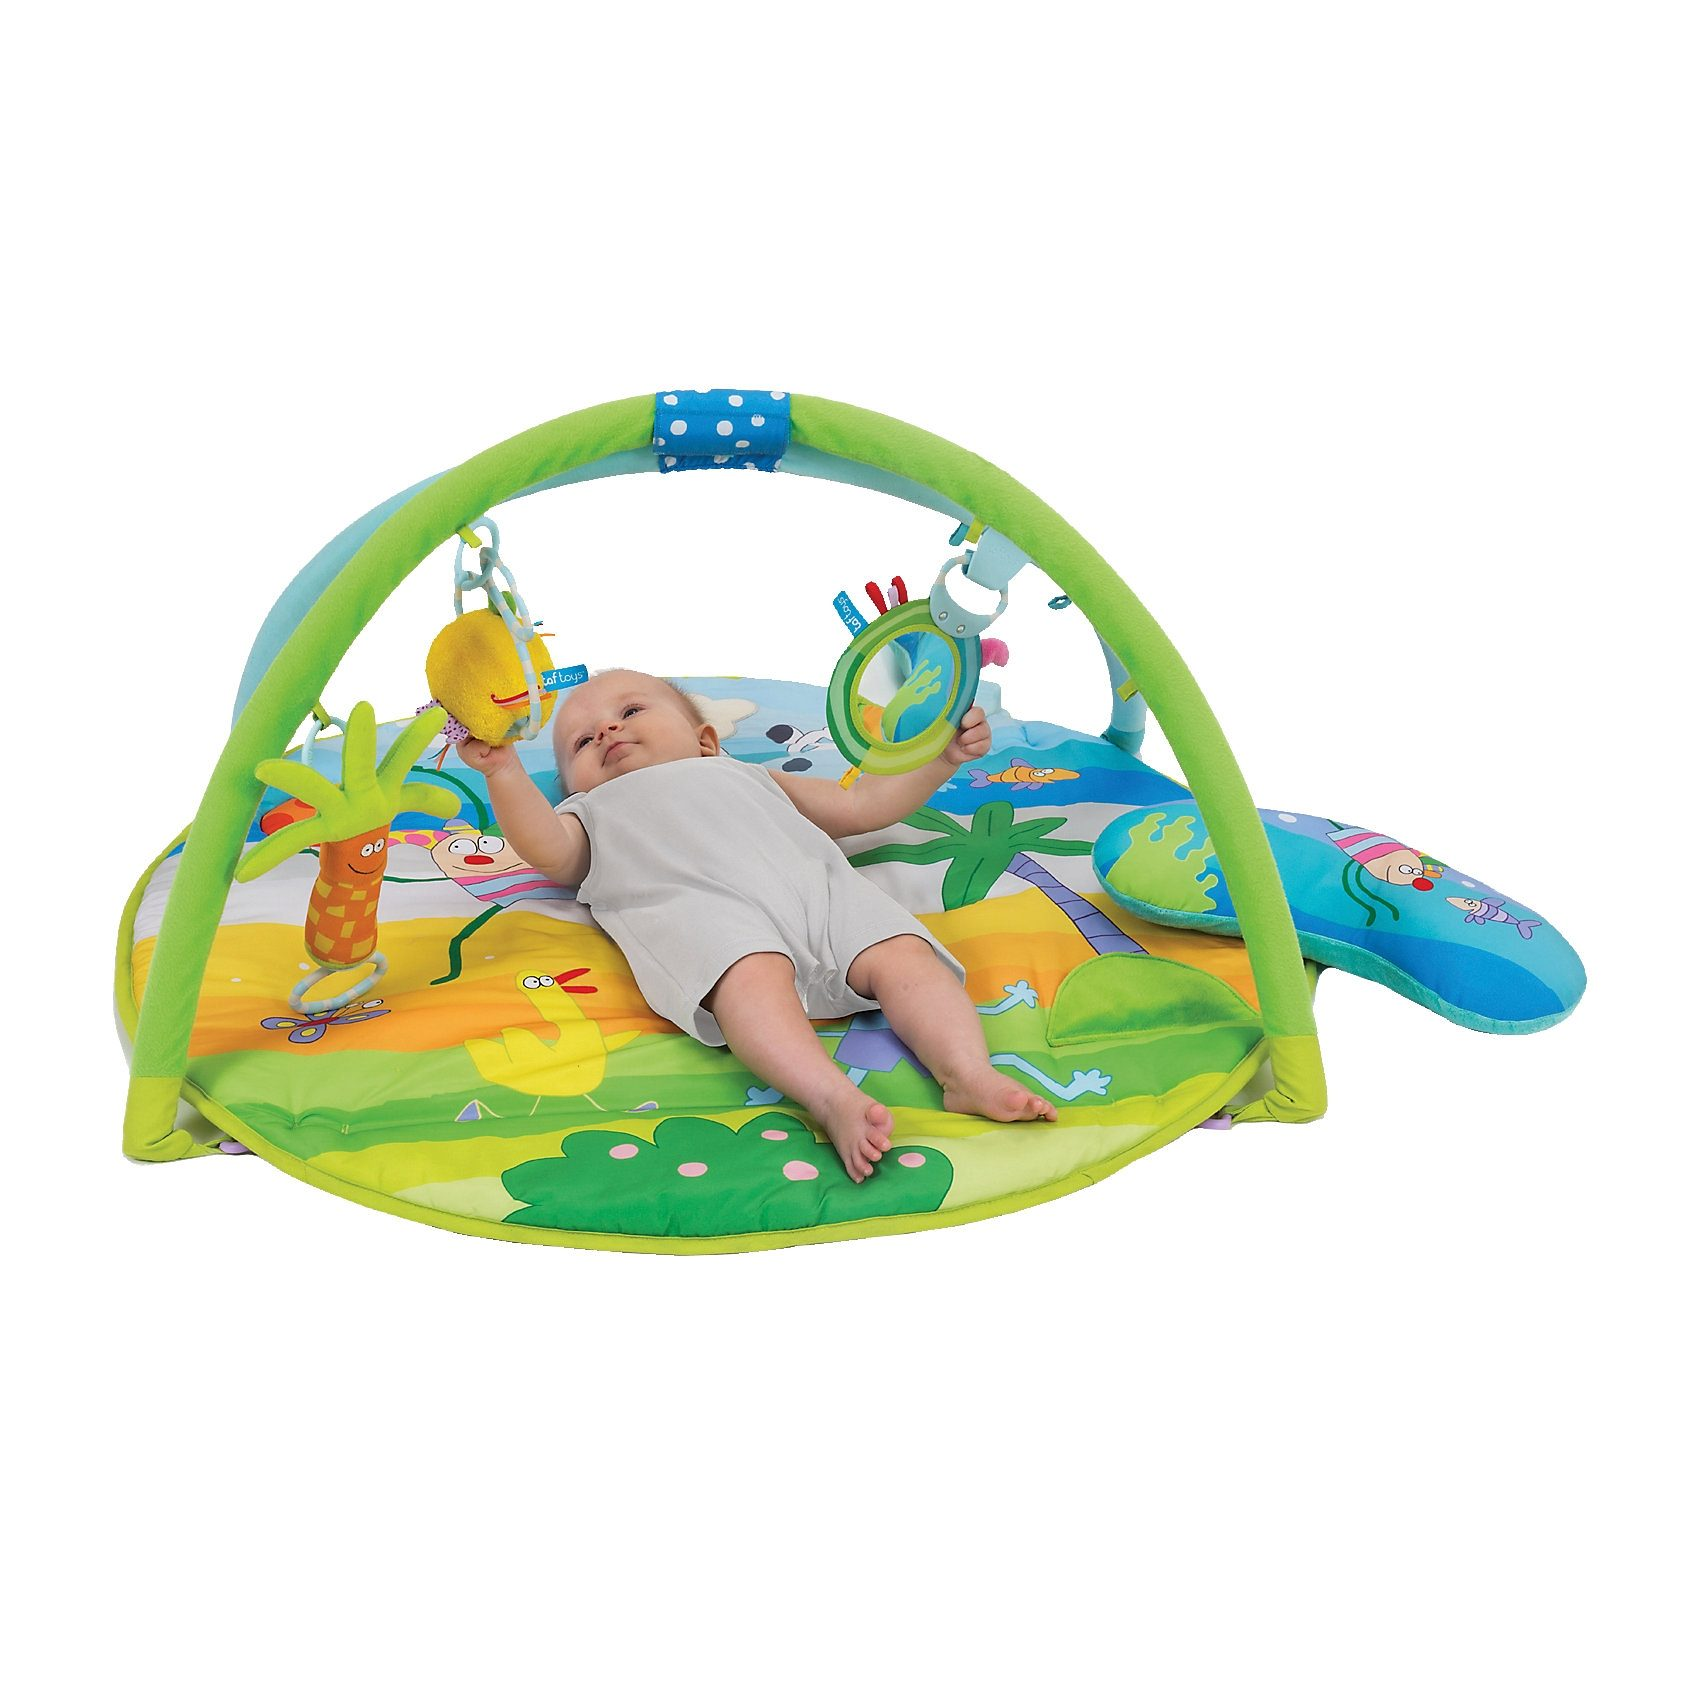 TAF TOYS 11645 Spieldecke Tummy-Time Clip on